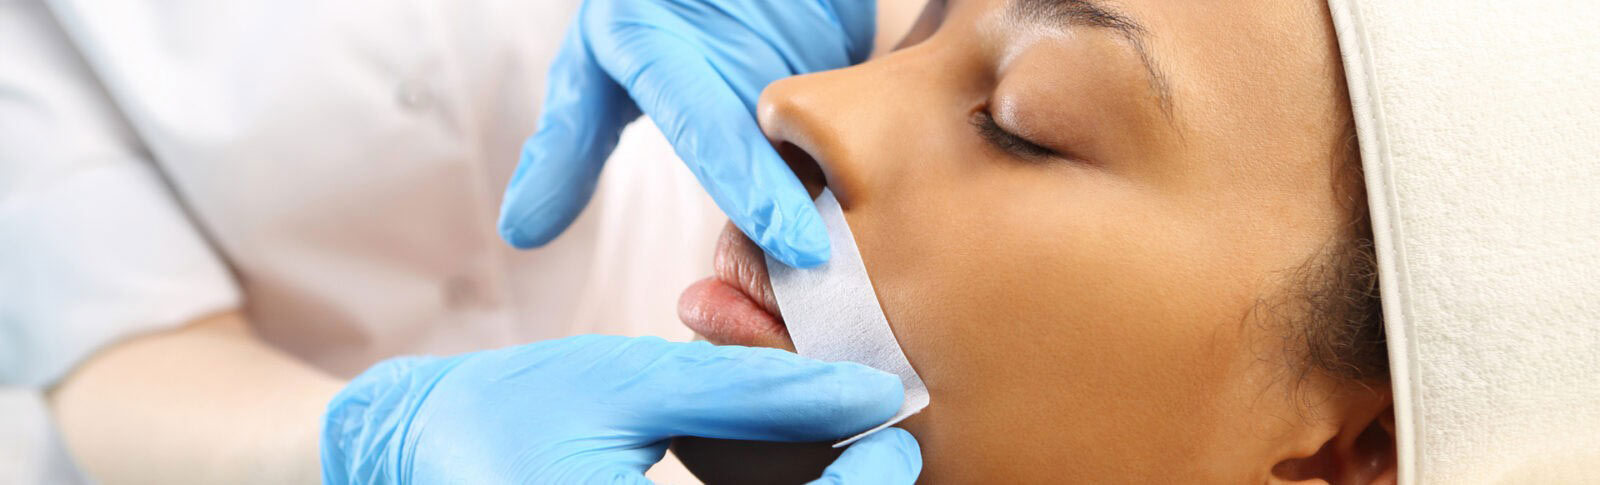 Waxing Services Innovative Aesthetics Medical Spa and Laser Center